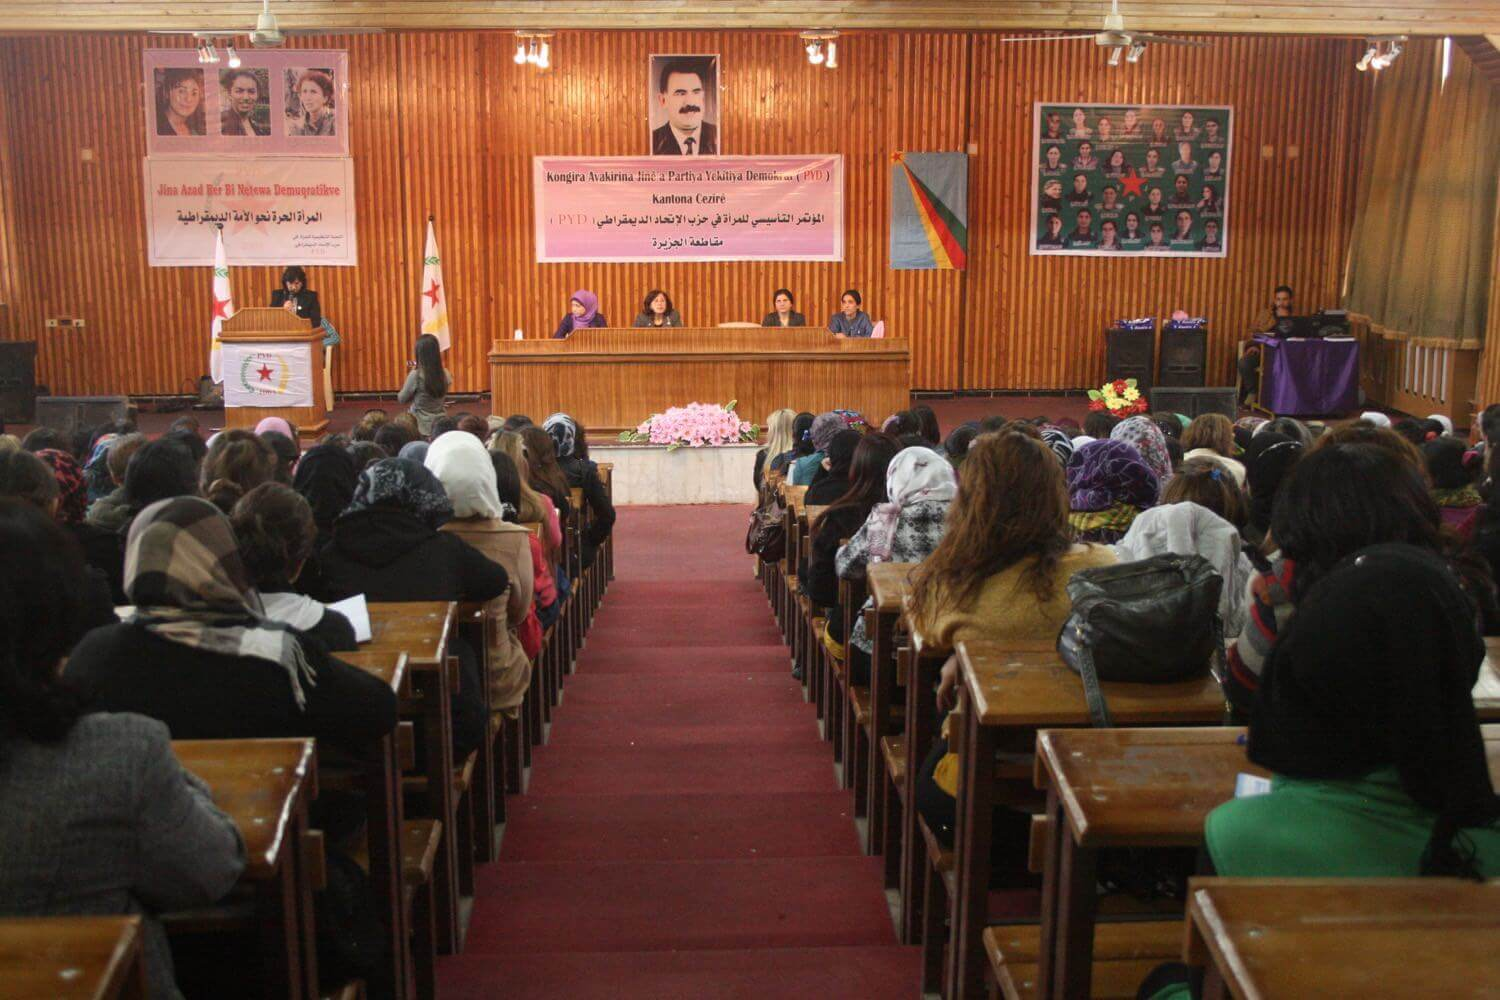 Women's congress of the PYD in the Congress centre of Qamishli, February 21, 2014